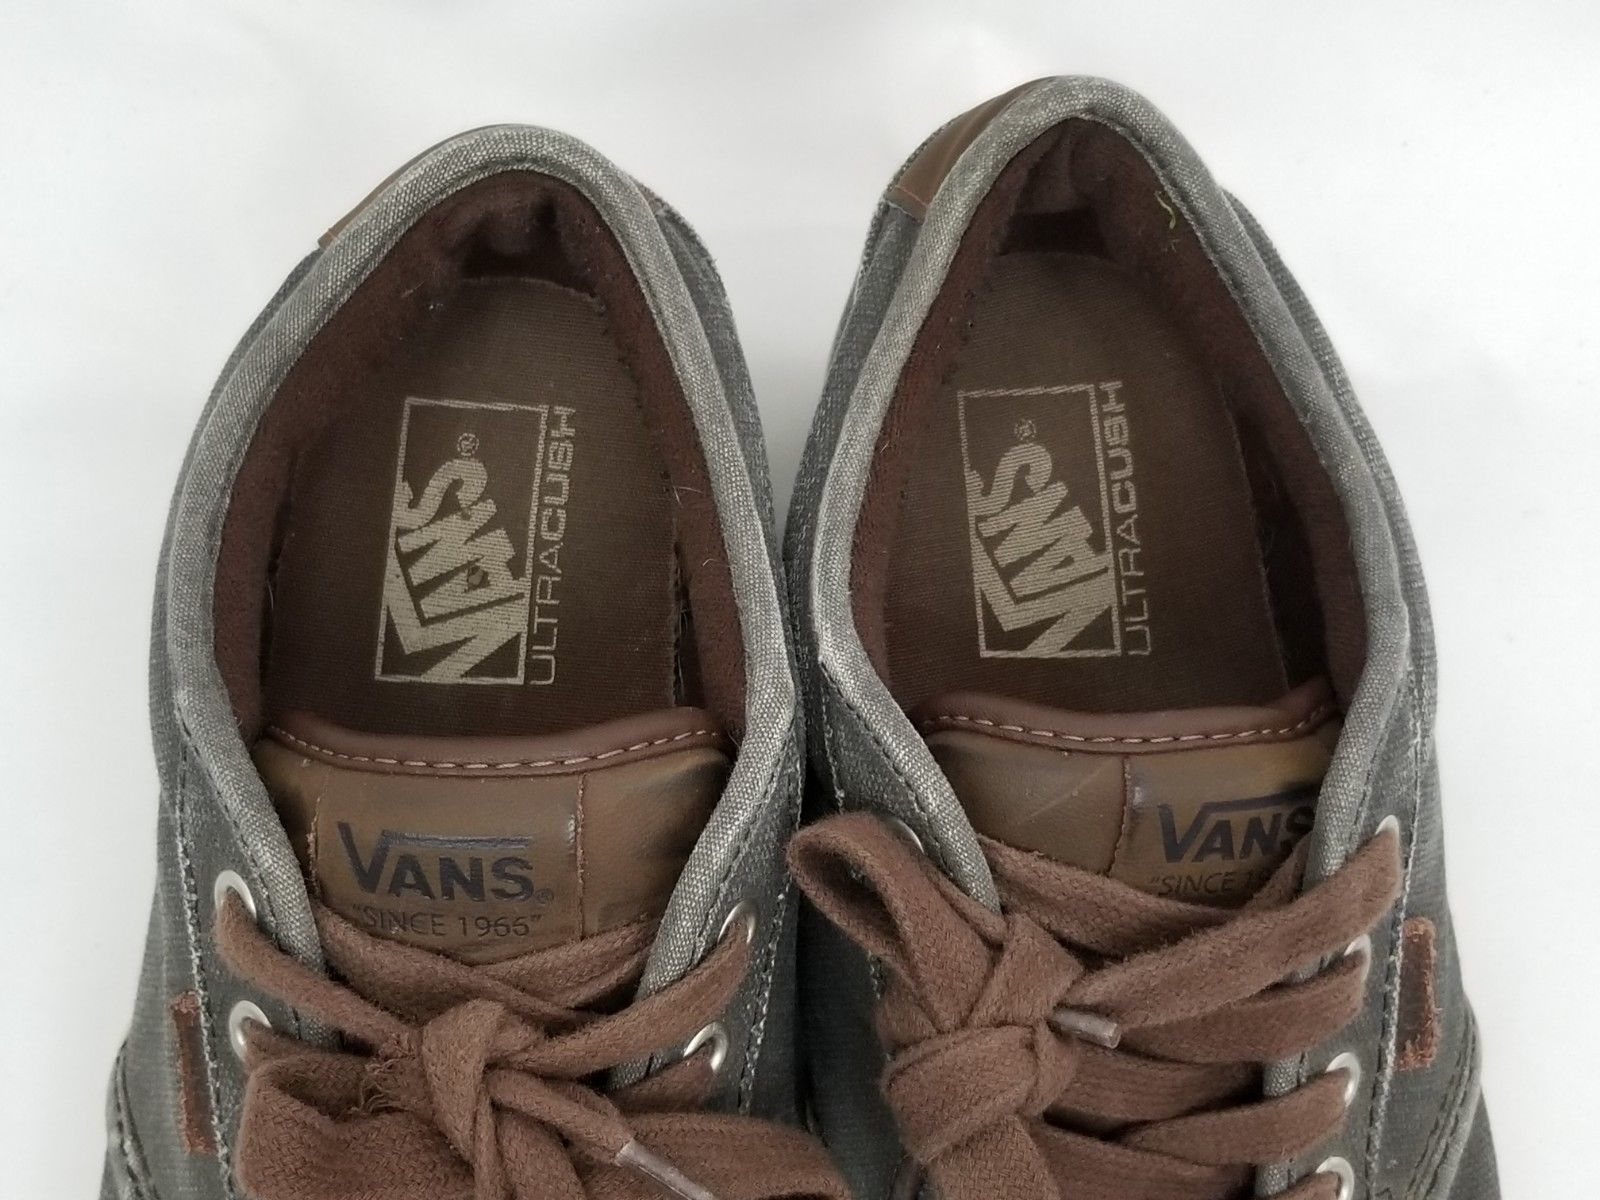 Mens Size 10 Gray Brown Vans Sneakers Shoes Lace Up 721356 image 4